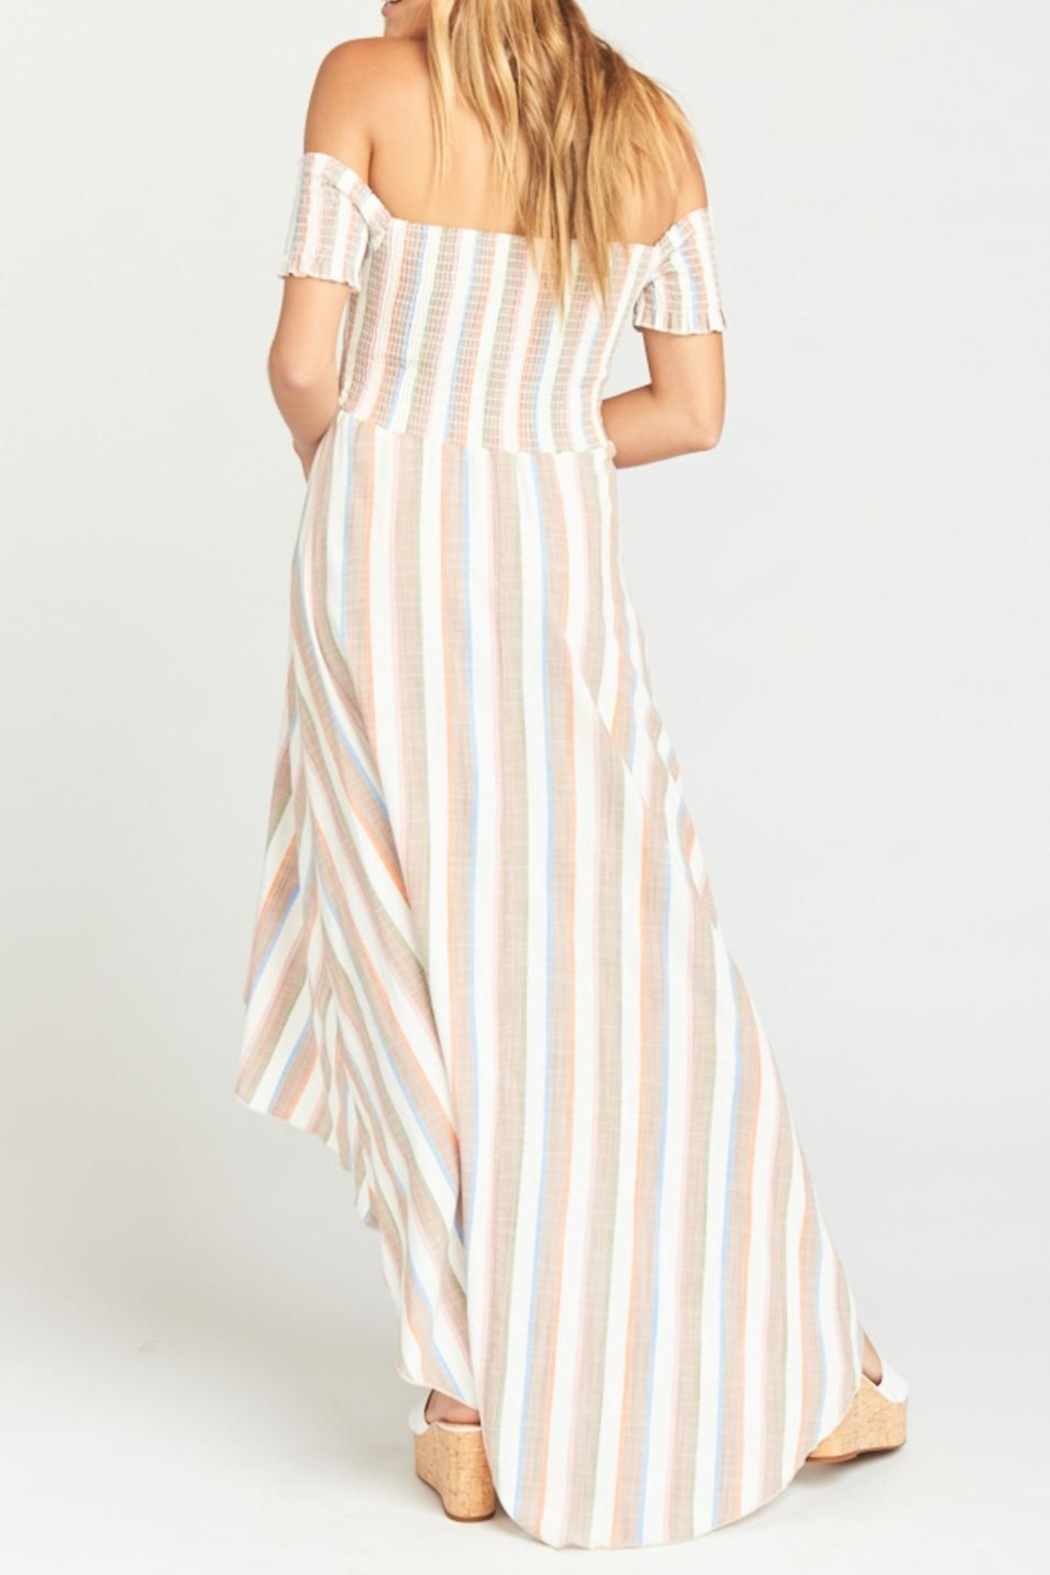 Show Me Your Mumu Willa Maxi Dress - Side Cropped Image